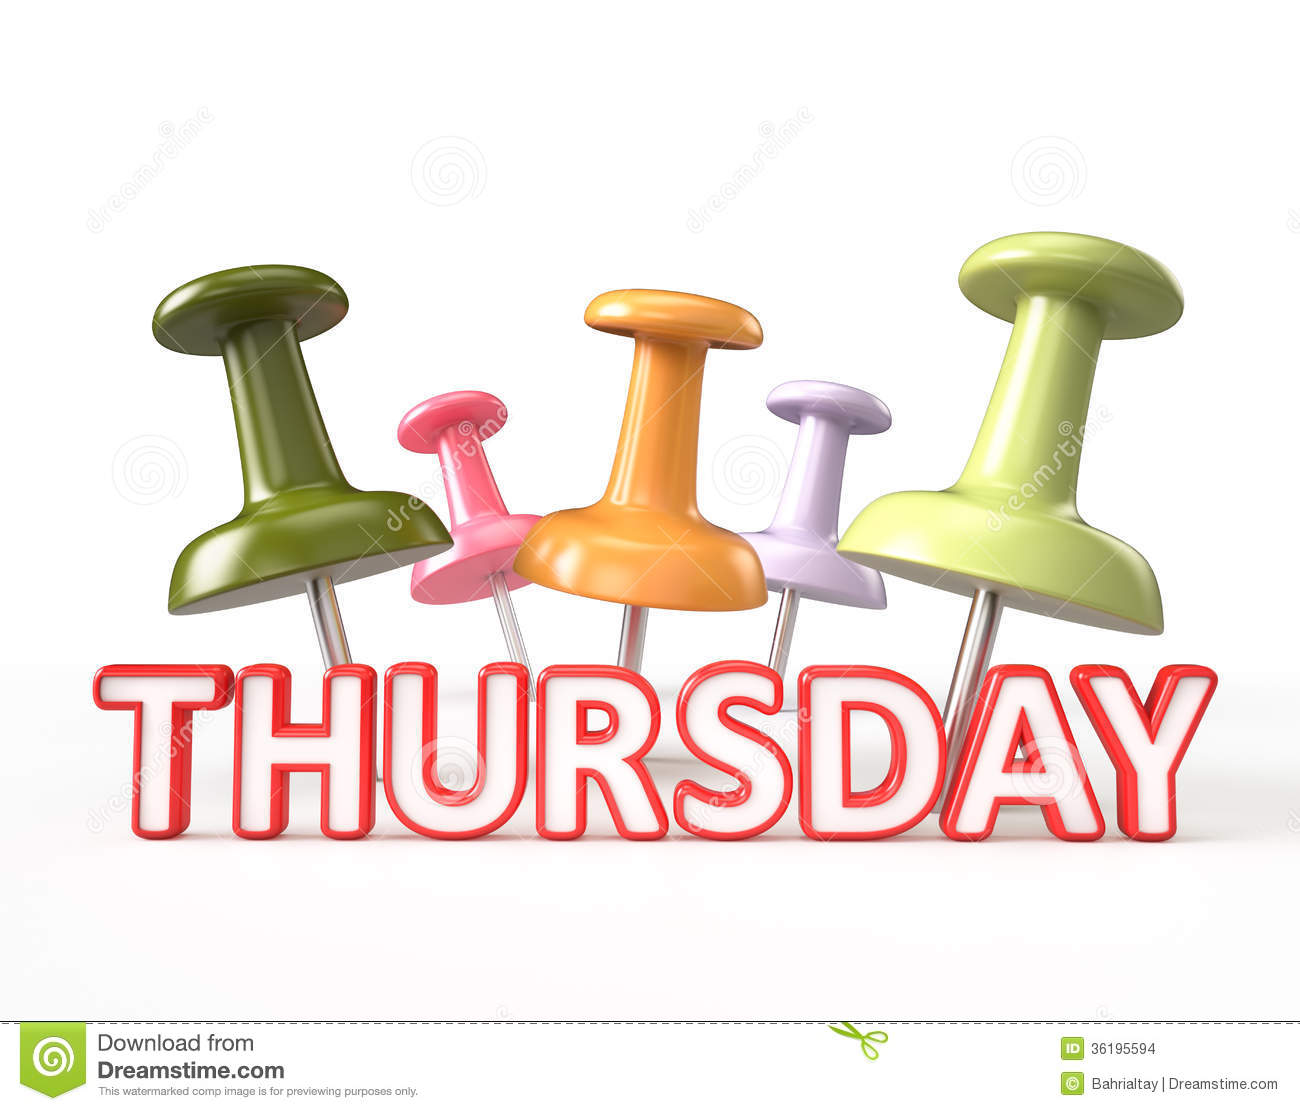 Stock Images: Busy Thursday. Image: 36195594